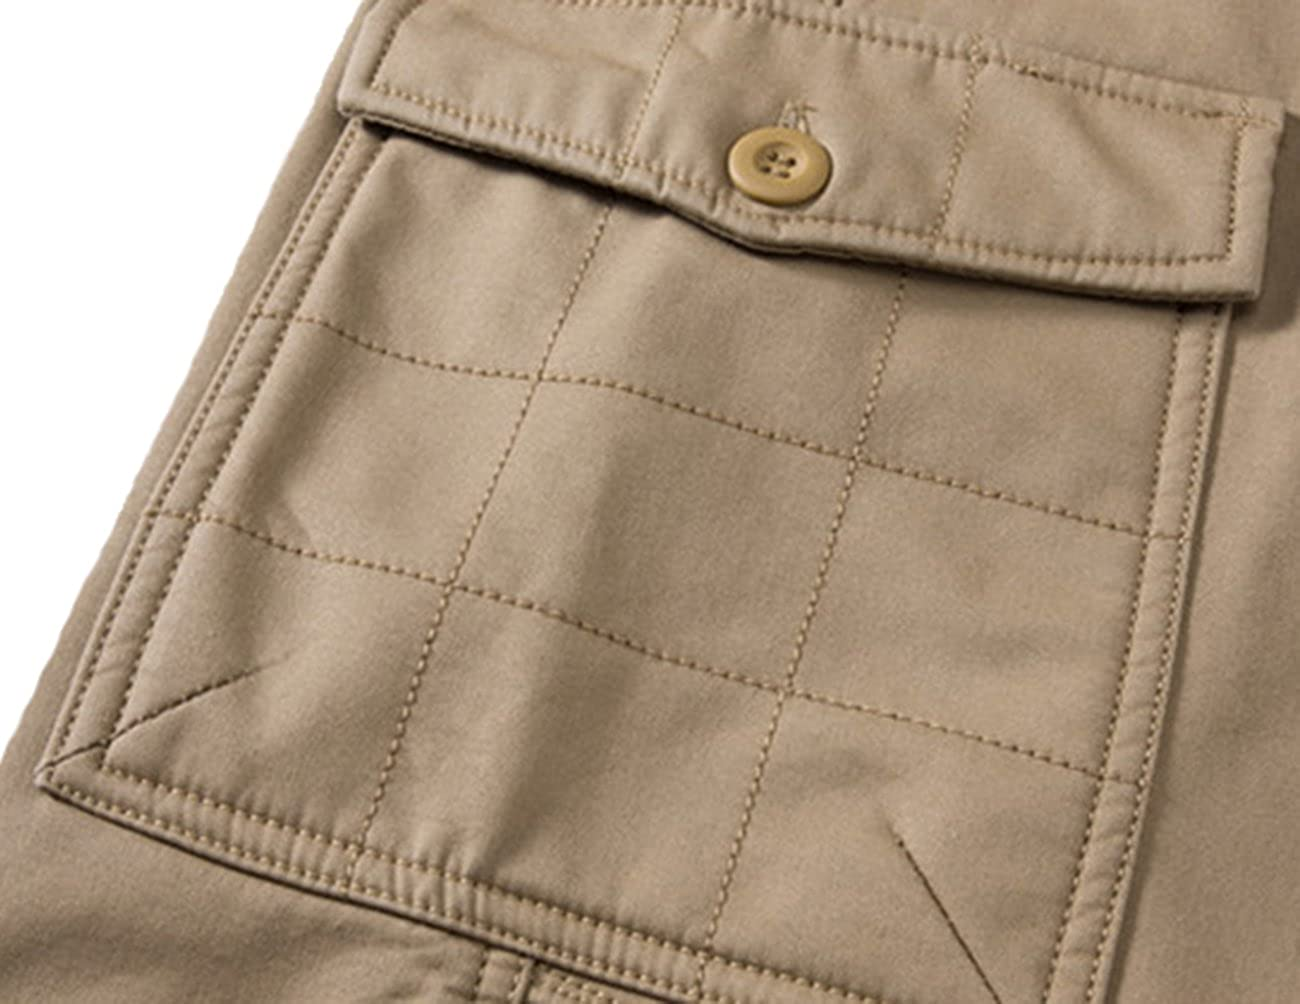 Donzev Mens Warm Fleece Lined Multi-Pockets Cargo Pants Trousers